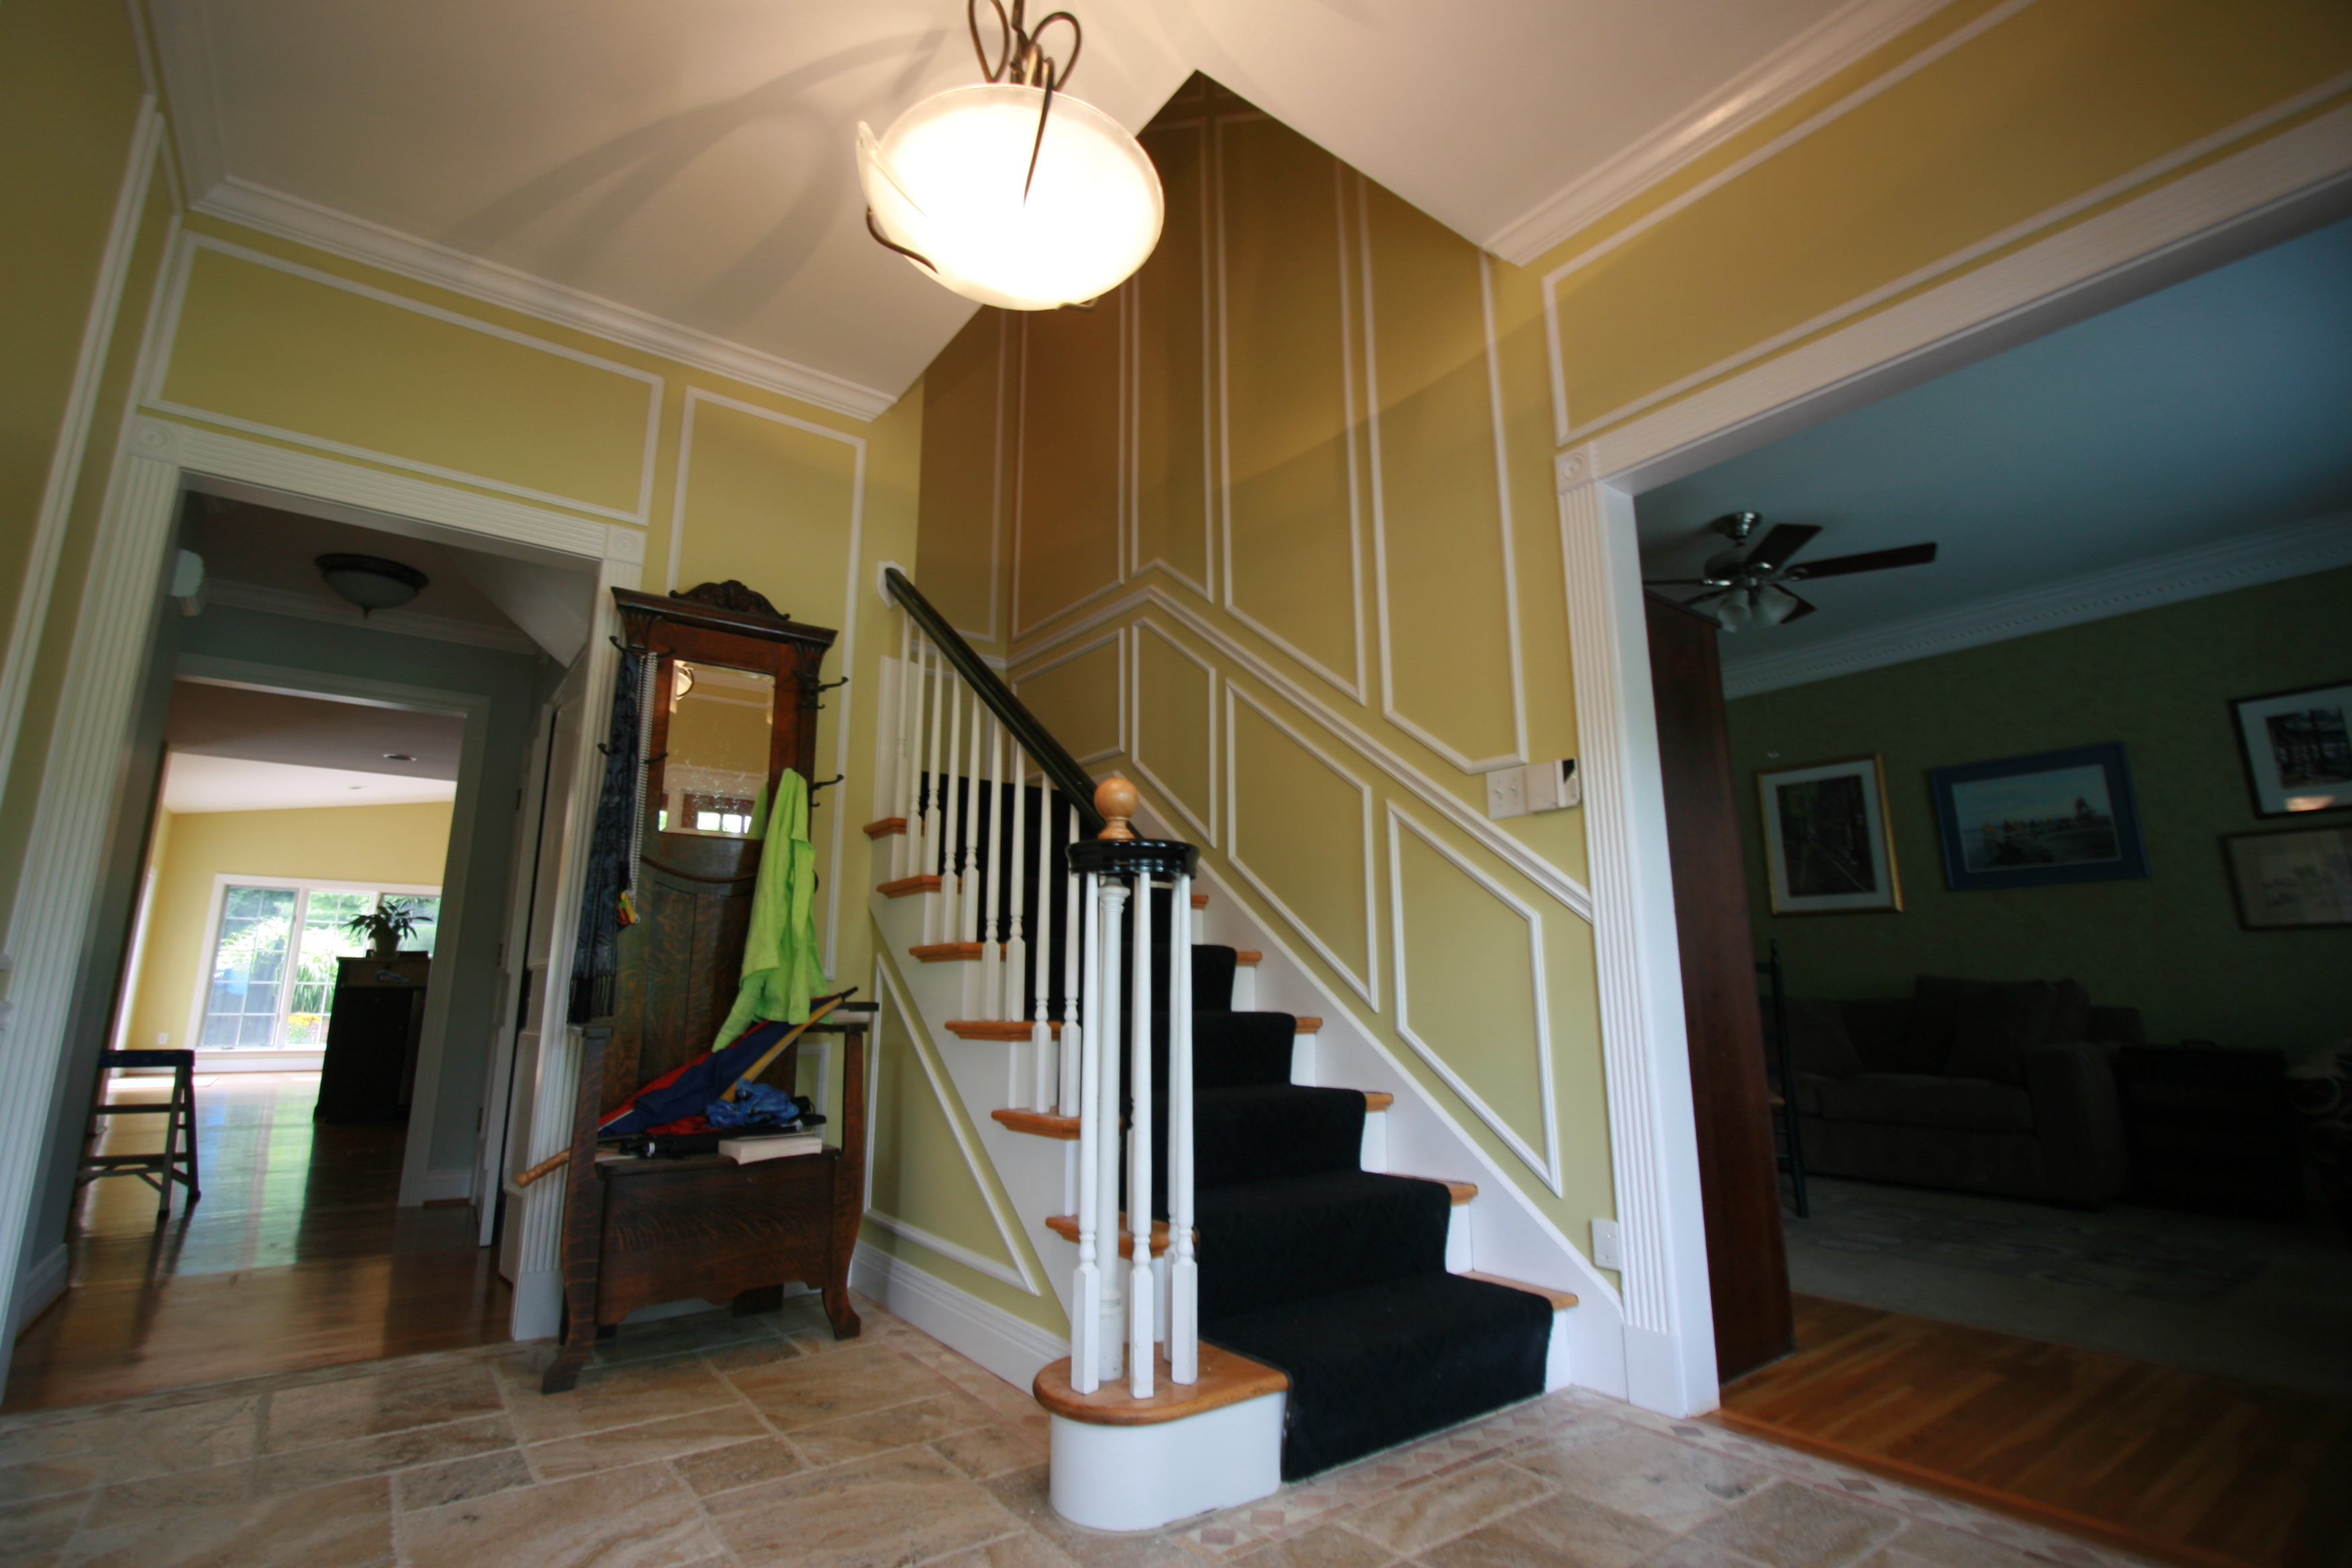 How to paint the ceiling - prompt experienced professionals